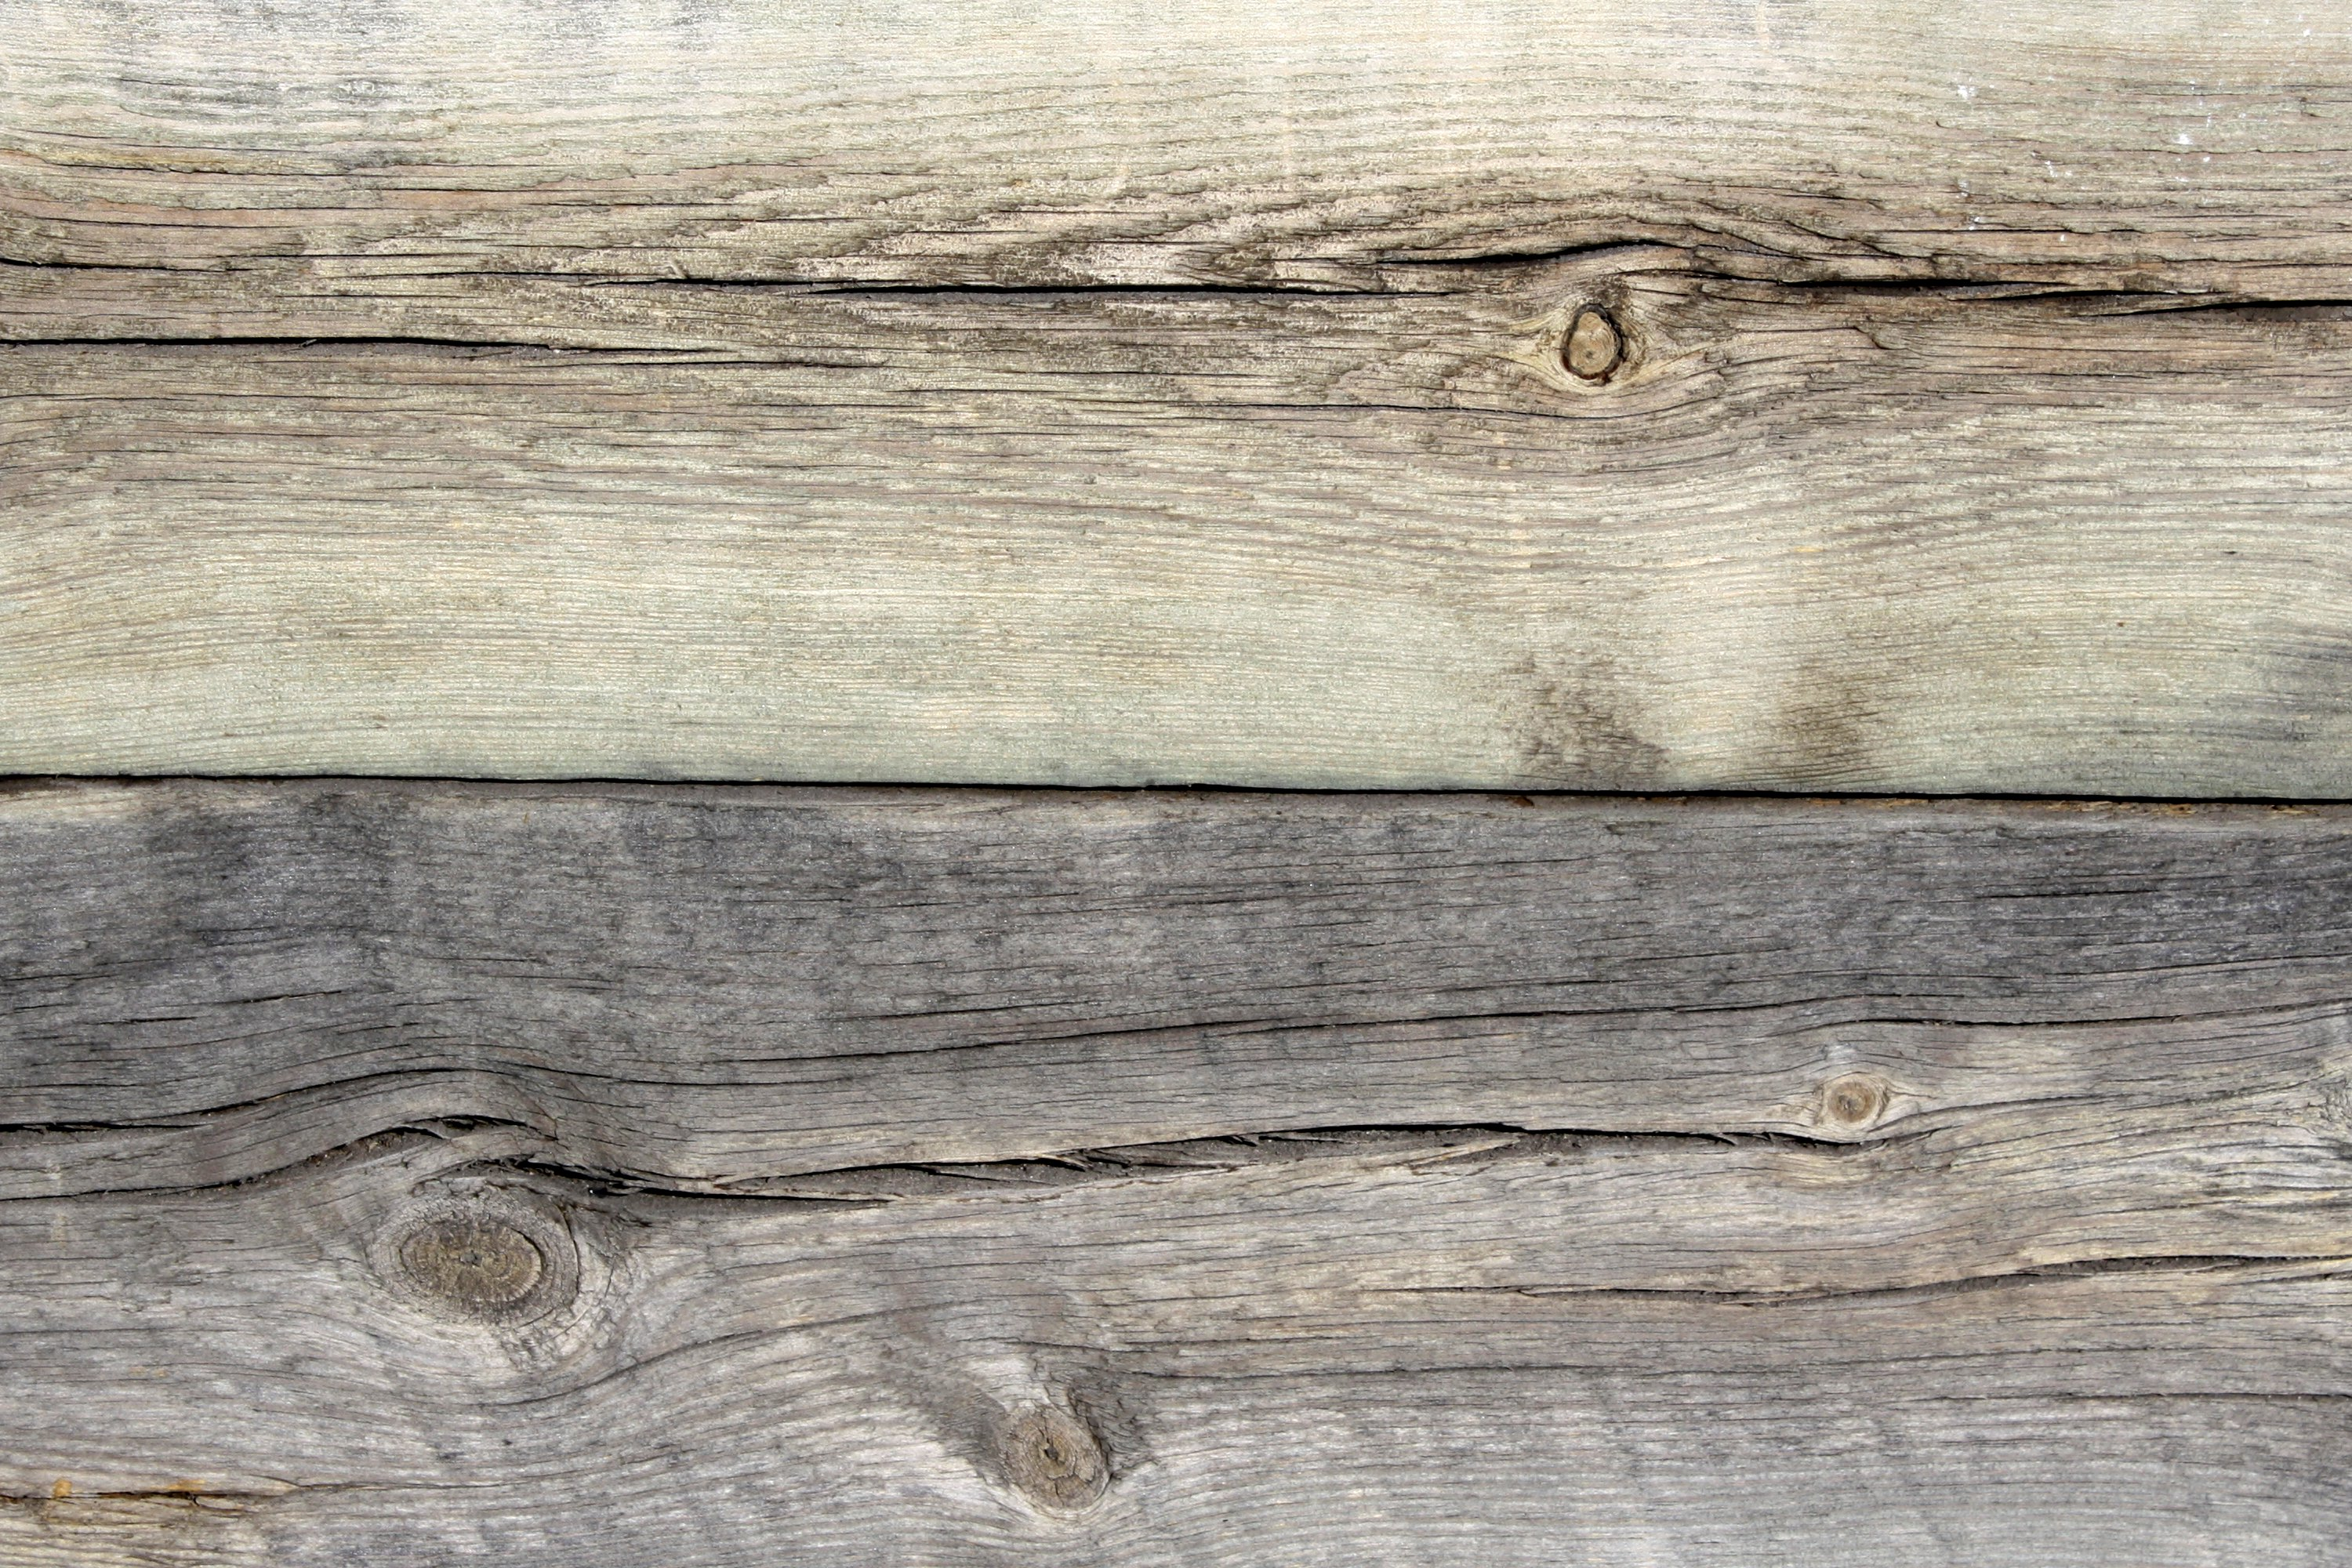 Weathered Wood Boards Close Up Texture Picture Free